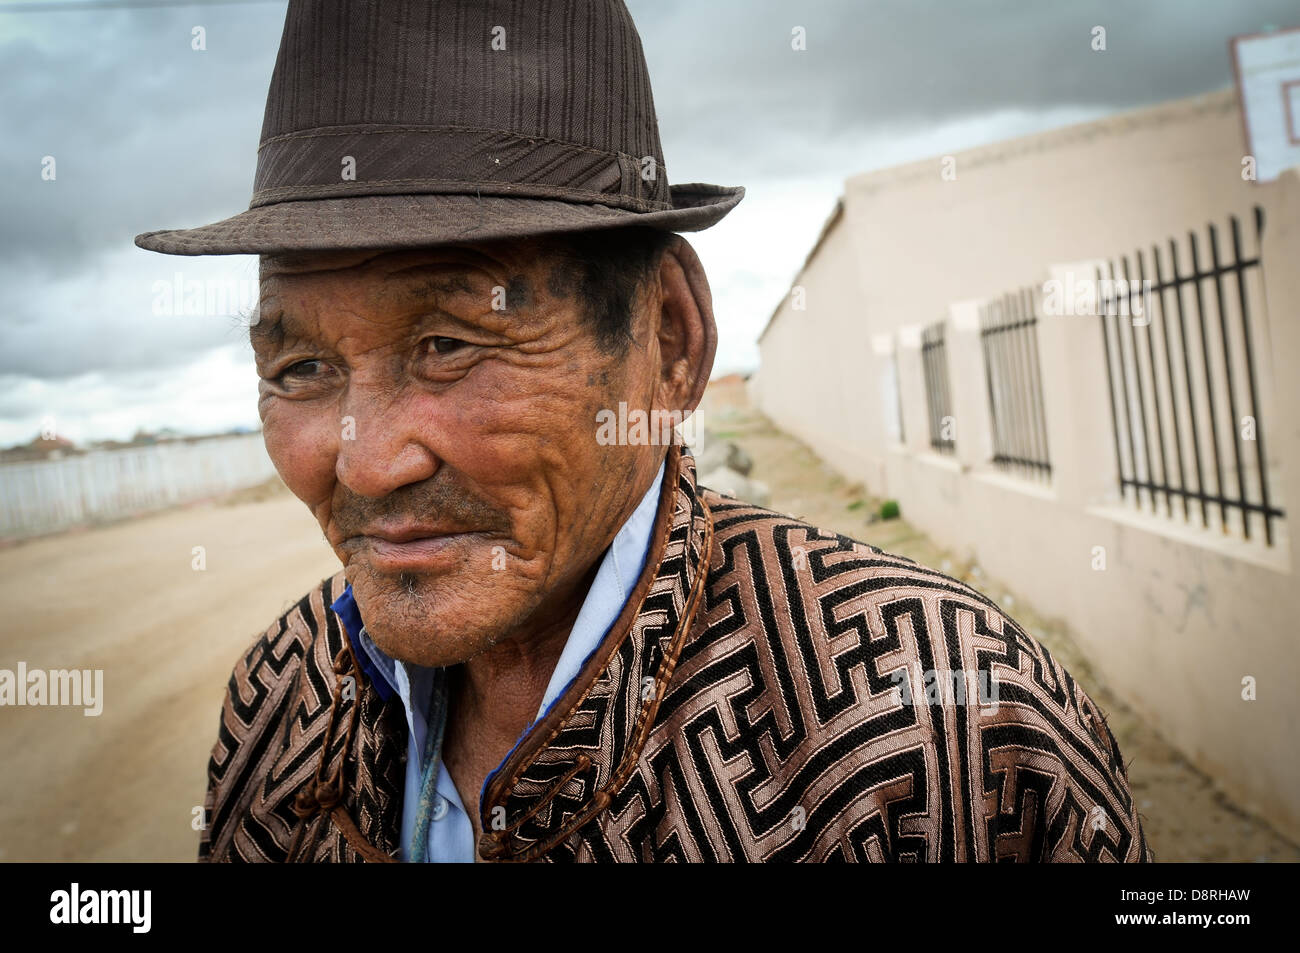 Life in small town Mongolia. - Stock Image